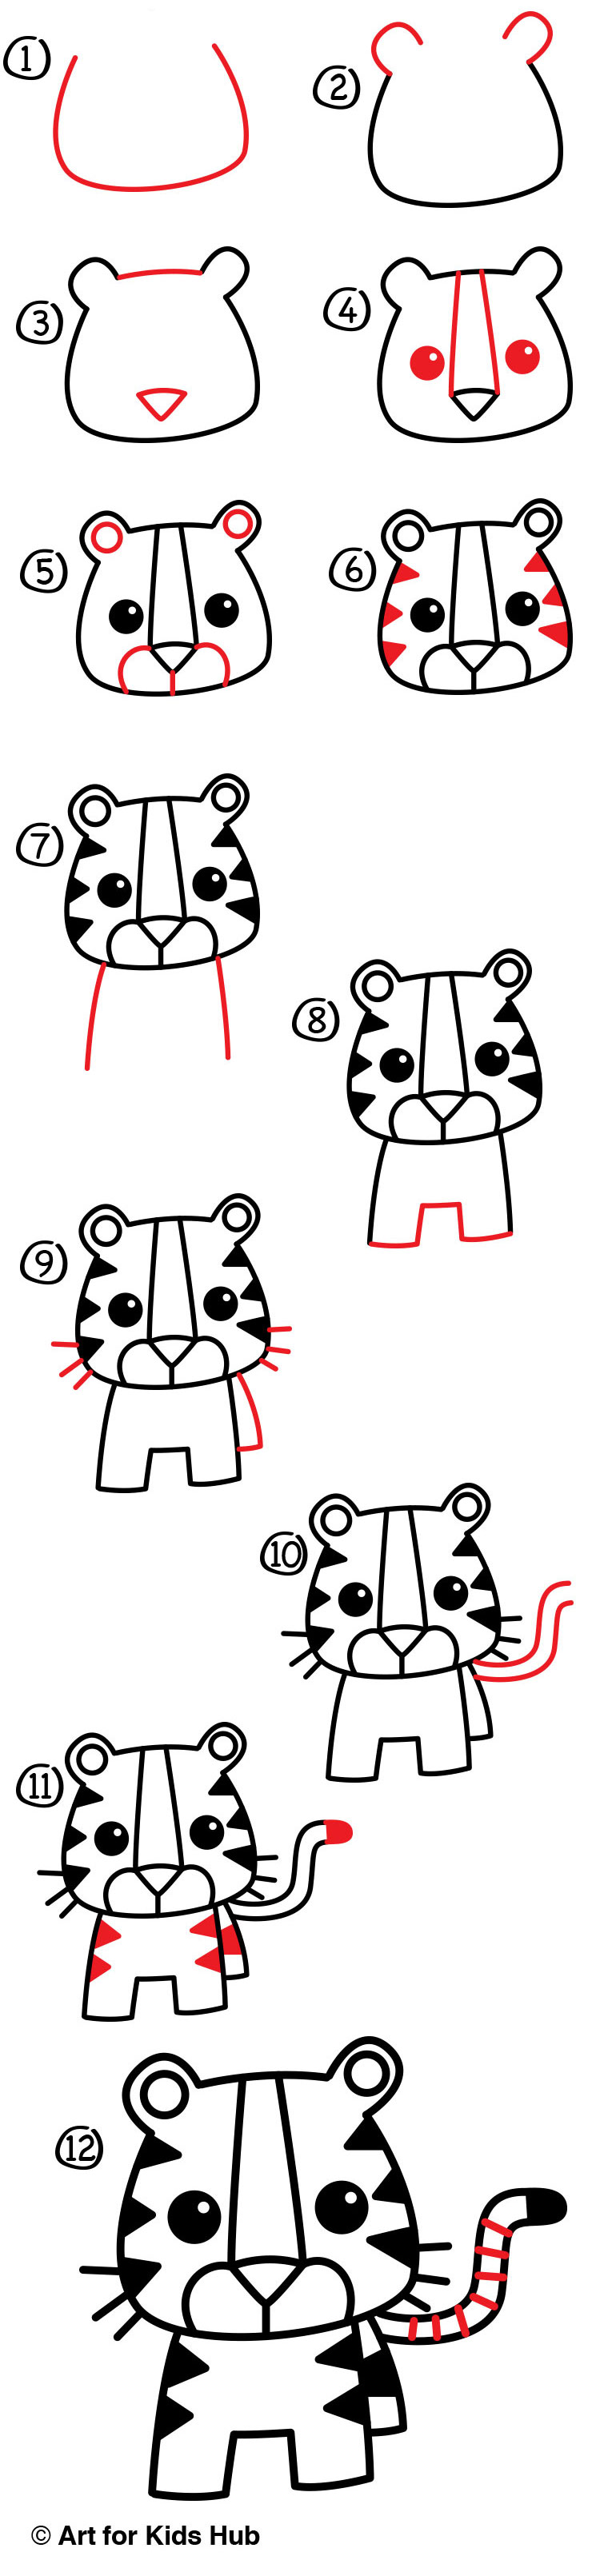 How To Draw A Cartoon Tiger - Art For Kids Hub